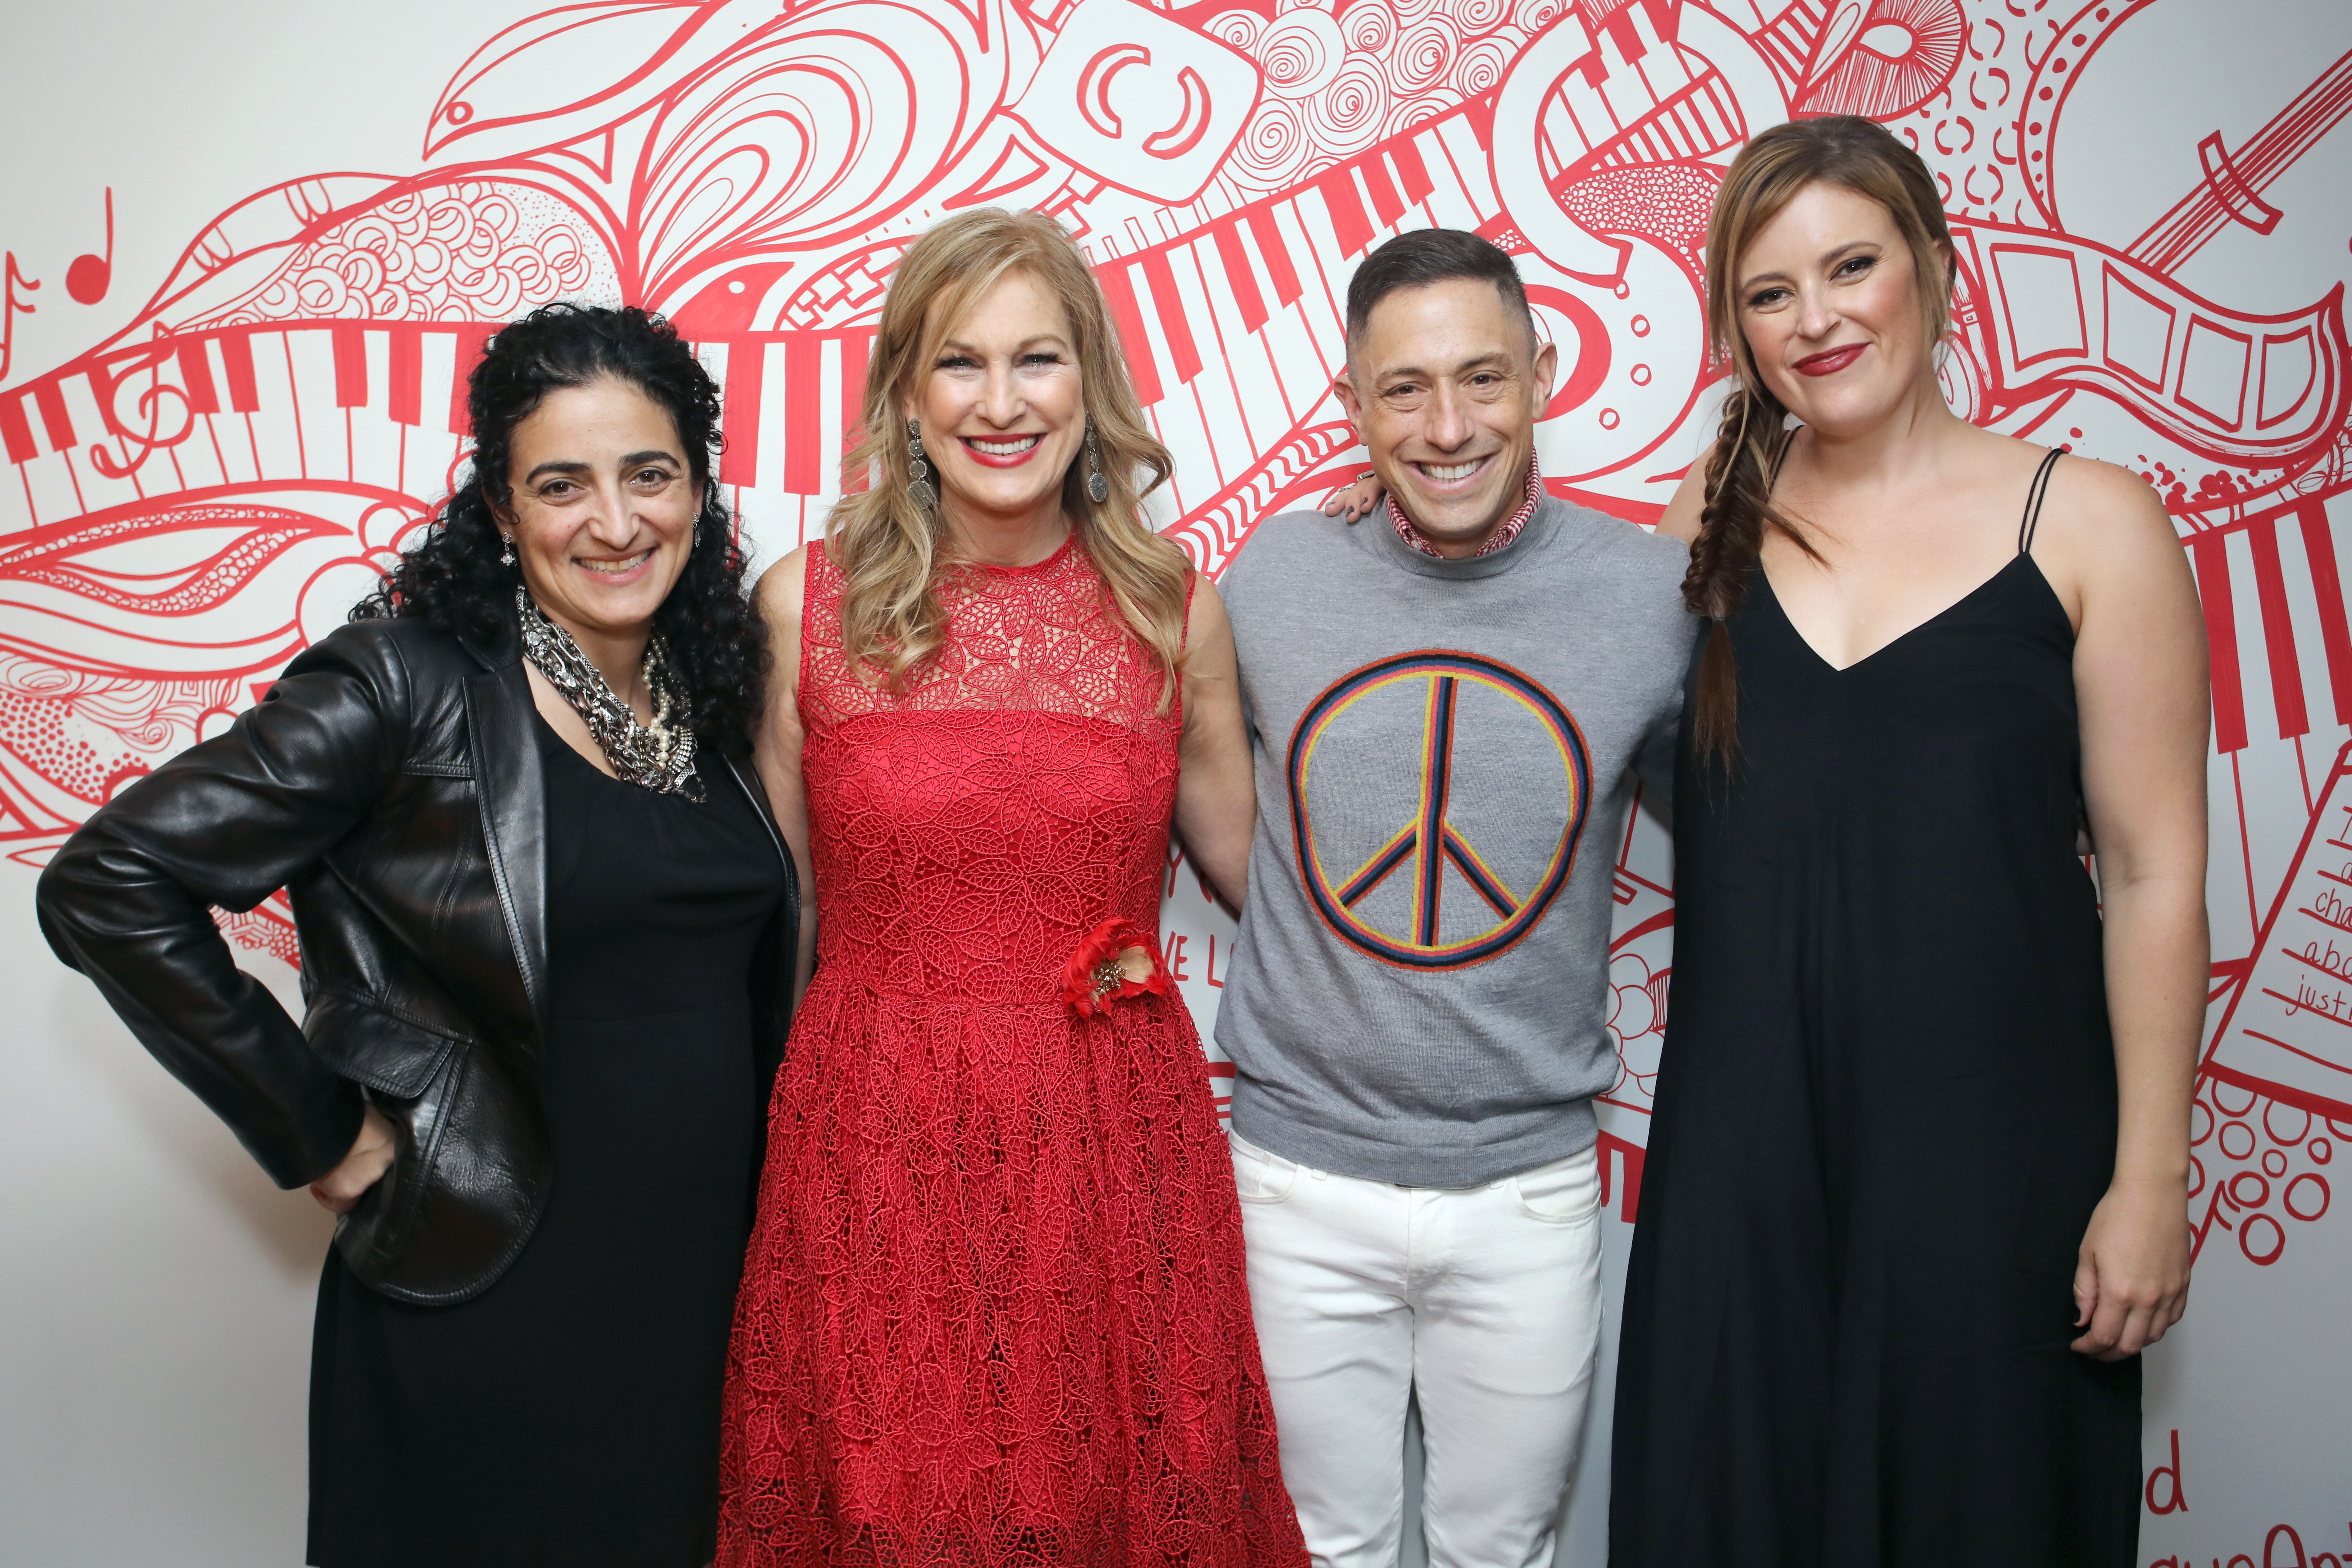 Global CMO for Hyatt Maryam Banikarim, CEO of (RED) Deb Dugan, designer Jonathan Adler and artist Kelsey Montague attend the (ANDAZ)RED Suite opening party at Andaz West Hollywood. (Photo: Business Wire)